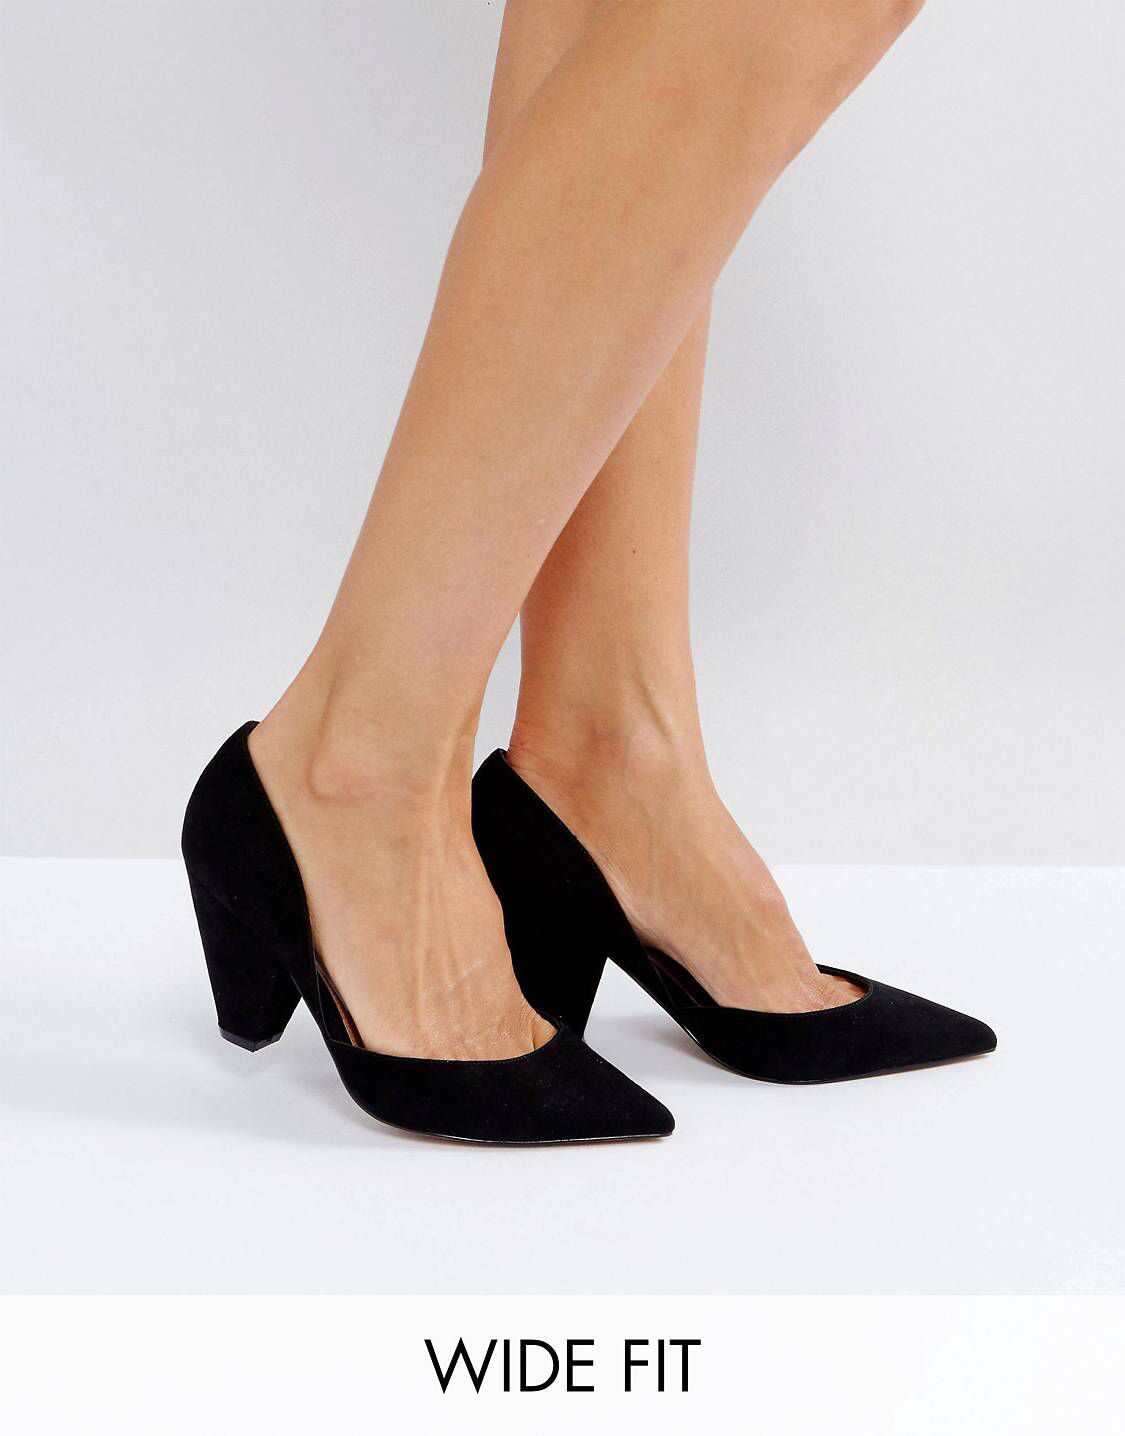 Wide fit shoes, Heels